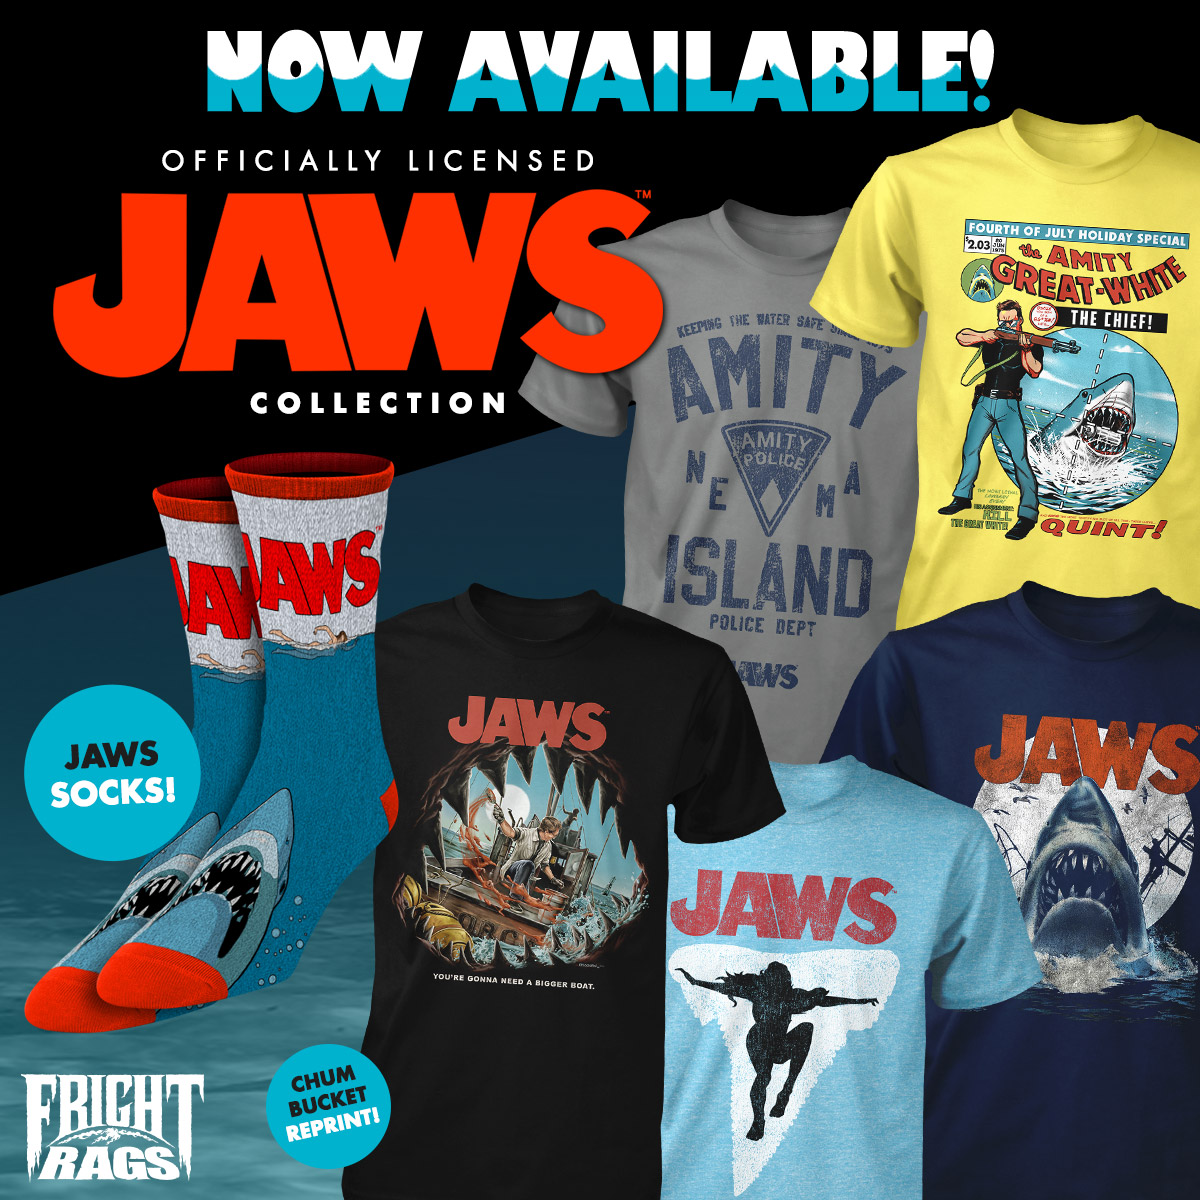 New Summer JAWS & CHUCKY Merch From Fright-Rags!